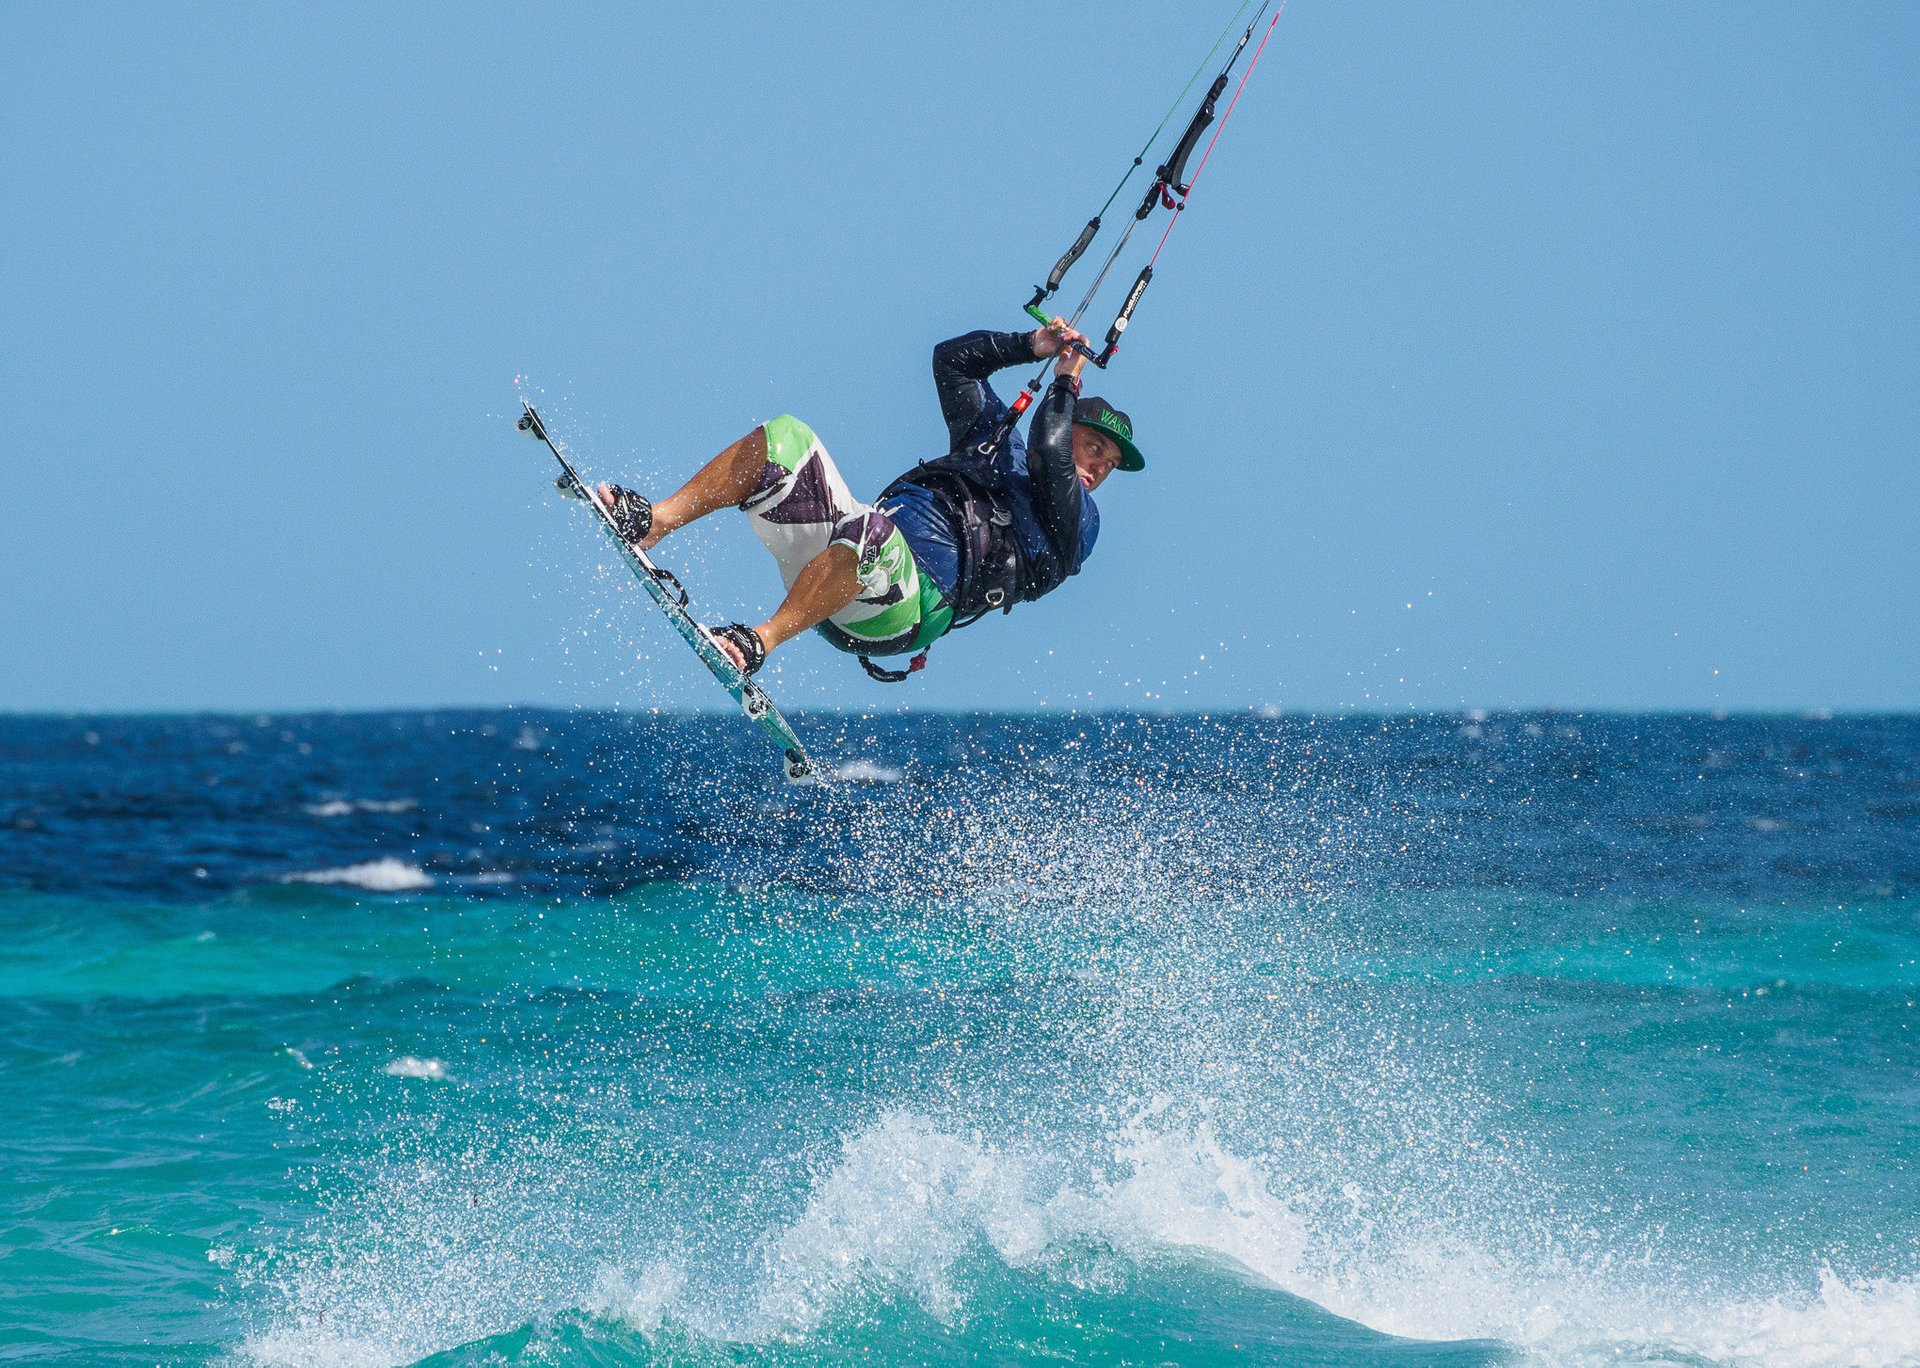 Kitesurfing  in Indonesia 2020 - Best Time